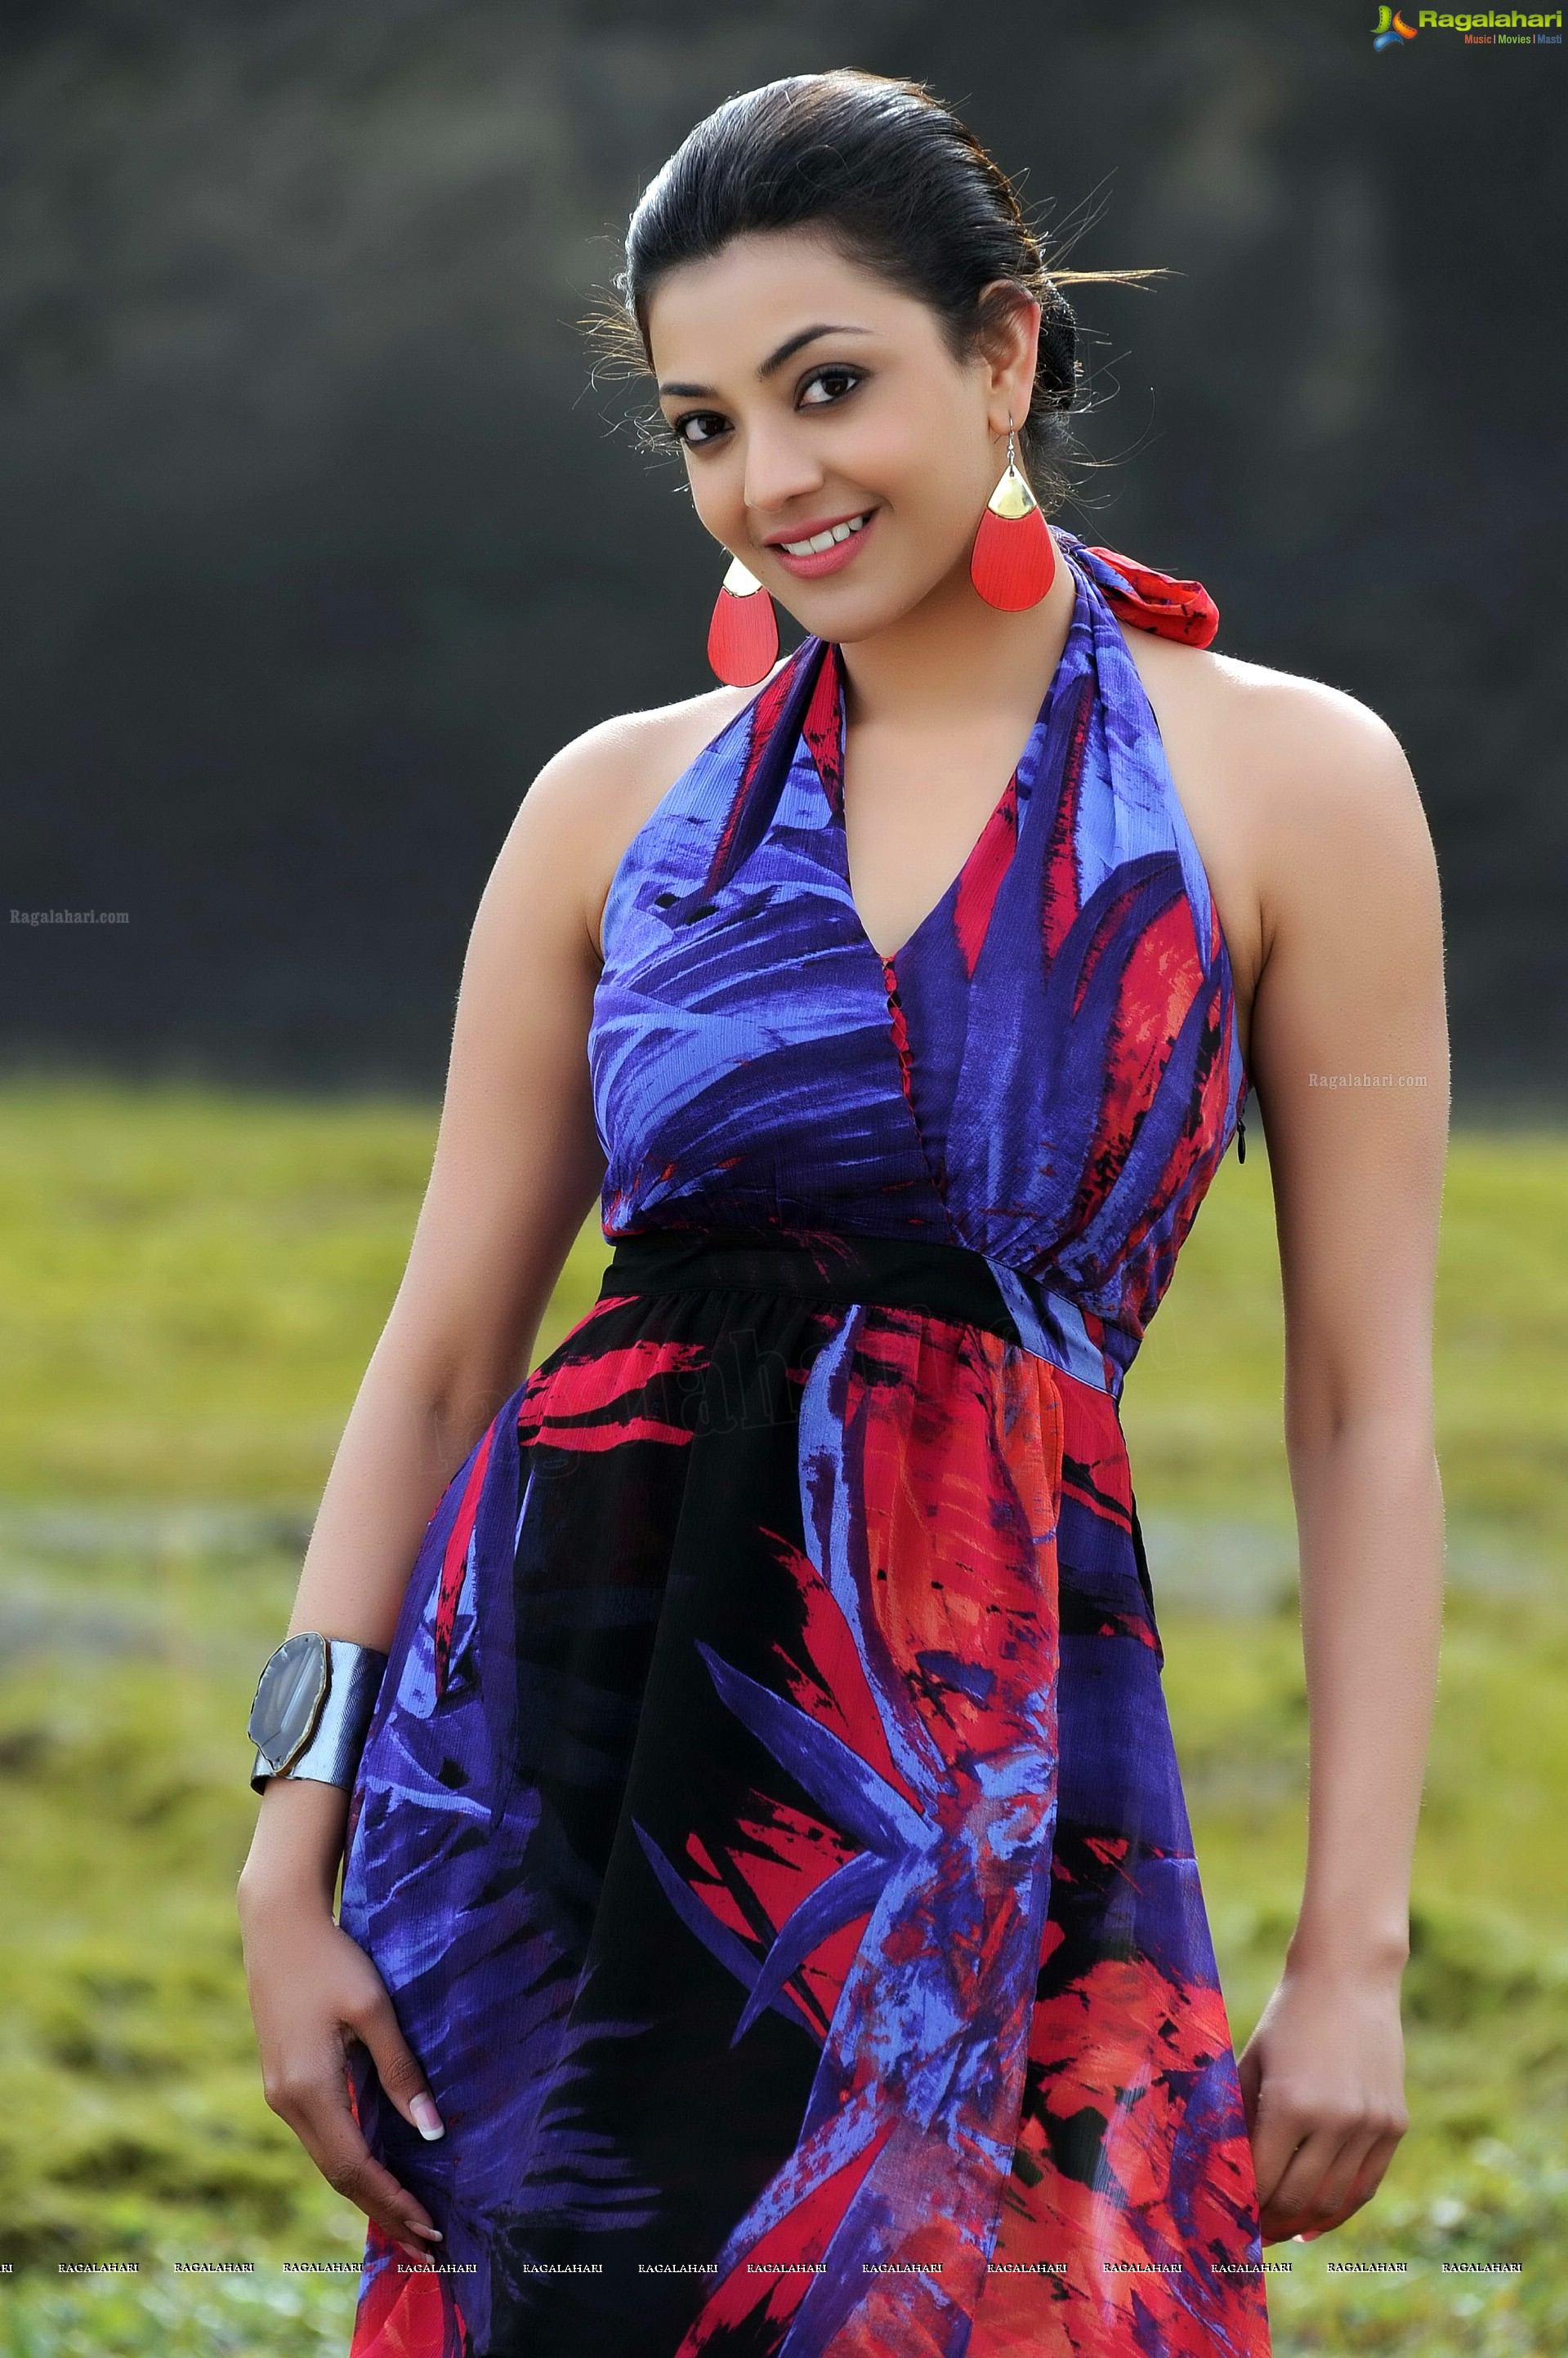 kajal agarwal (hd) image 10 | tollywood actress images,images